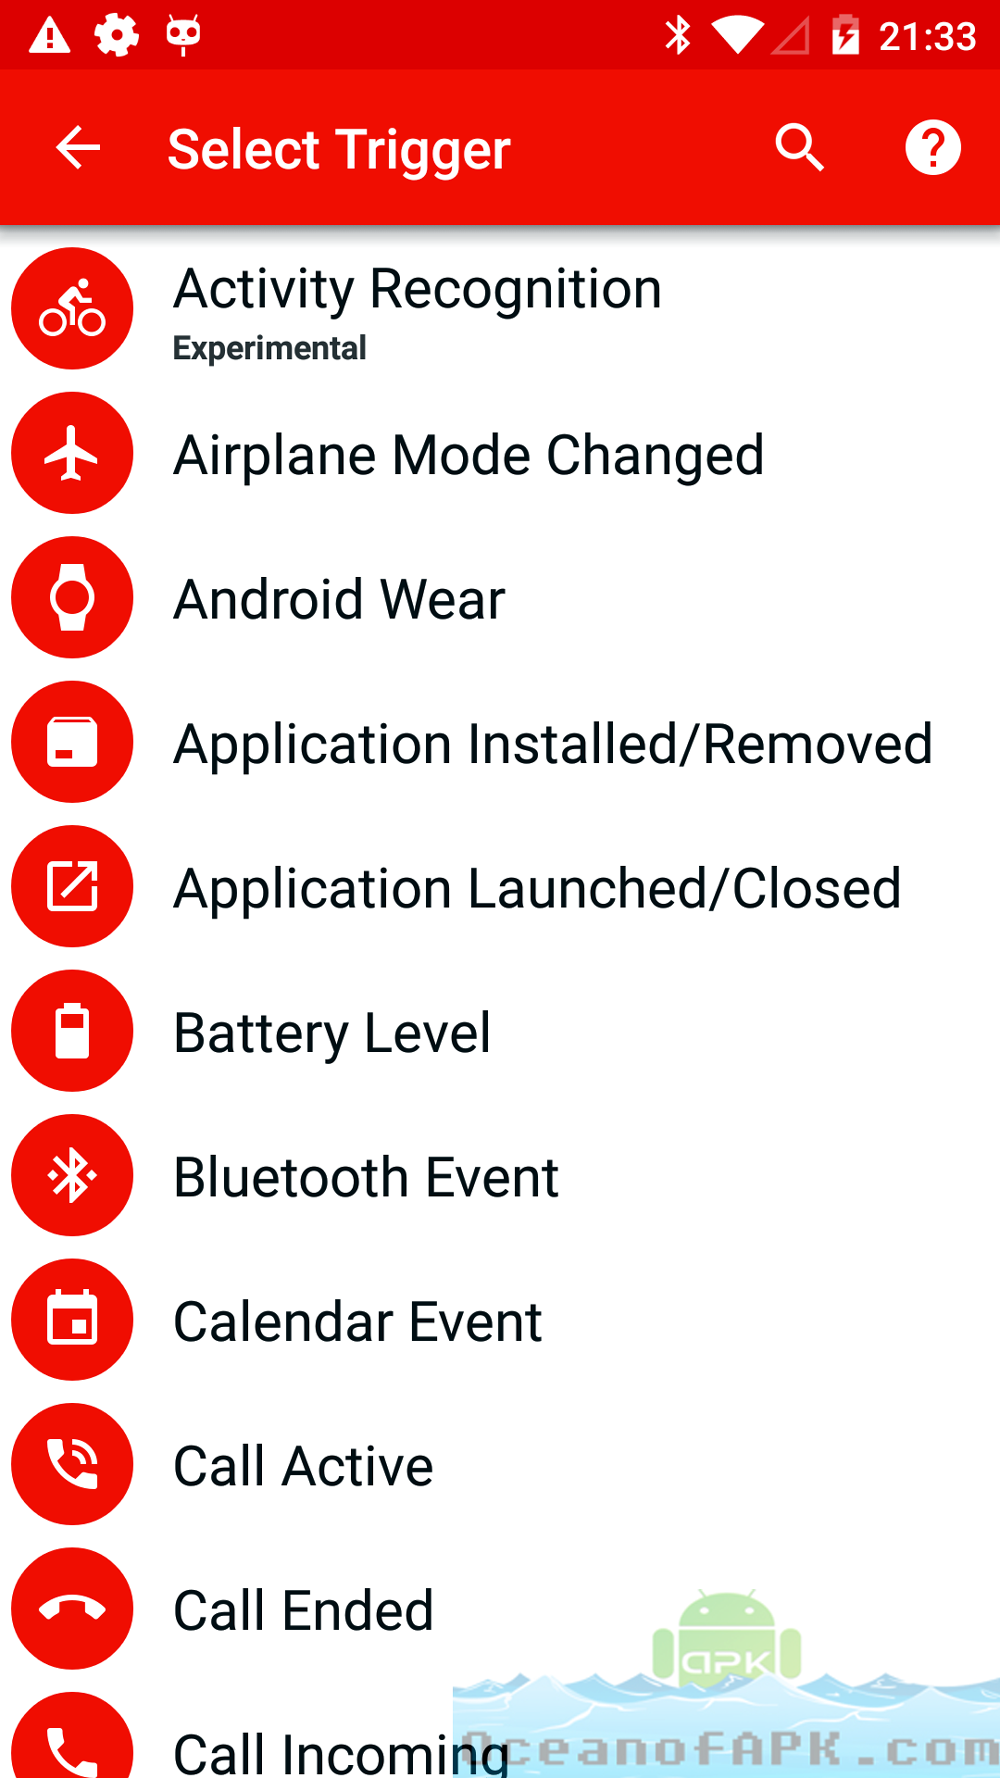 MacroDroid Device Automation PRO APK Features